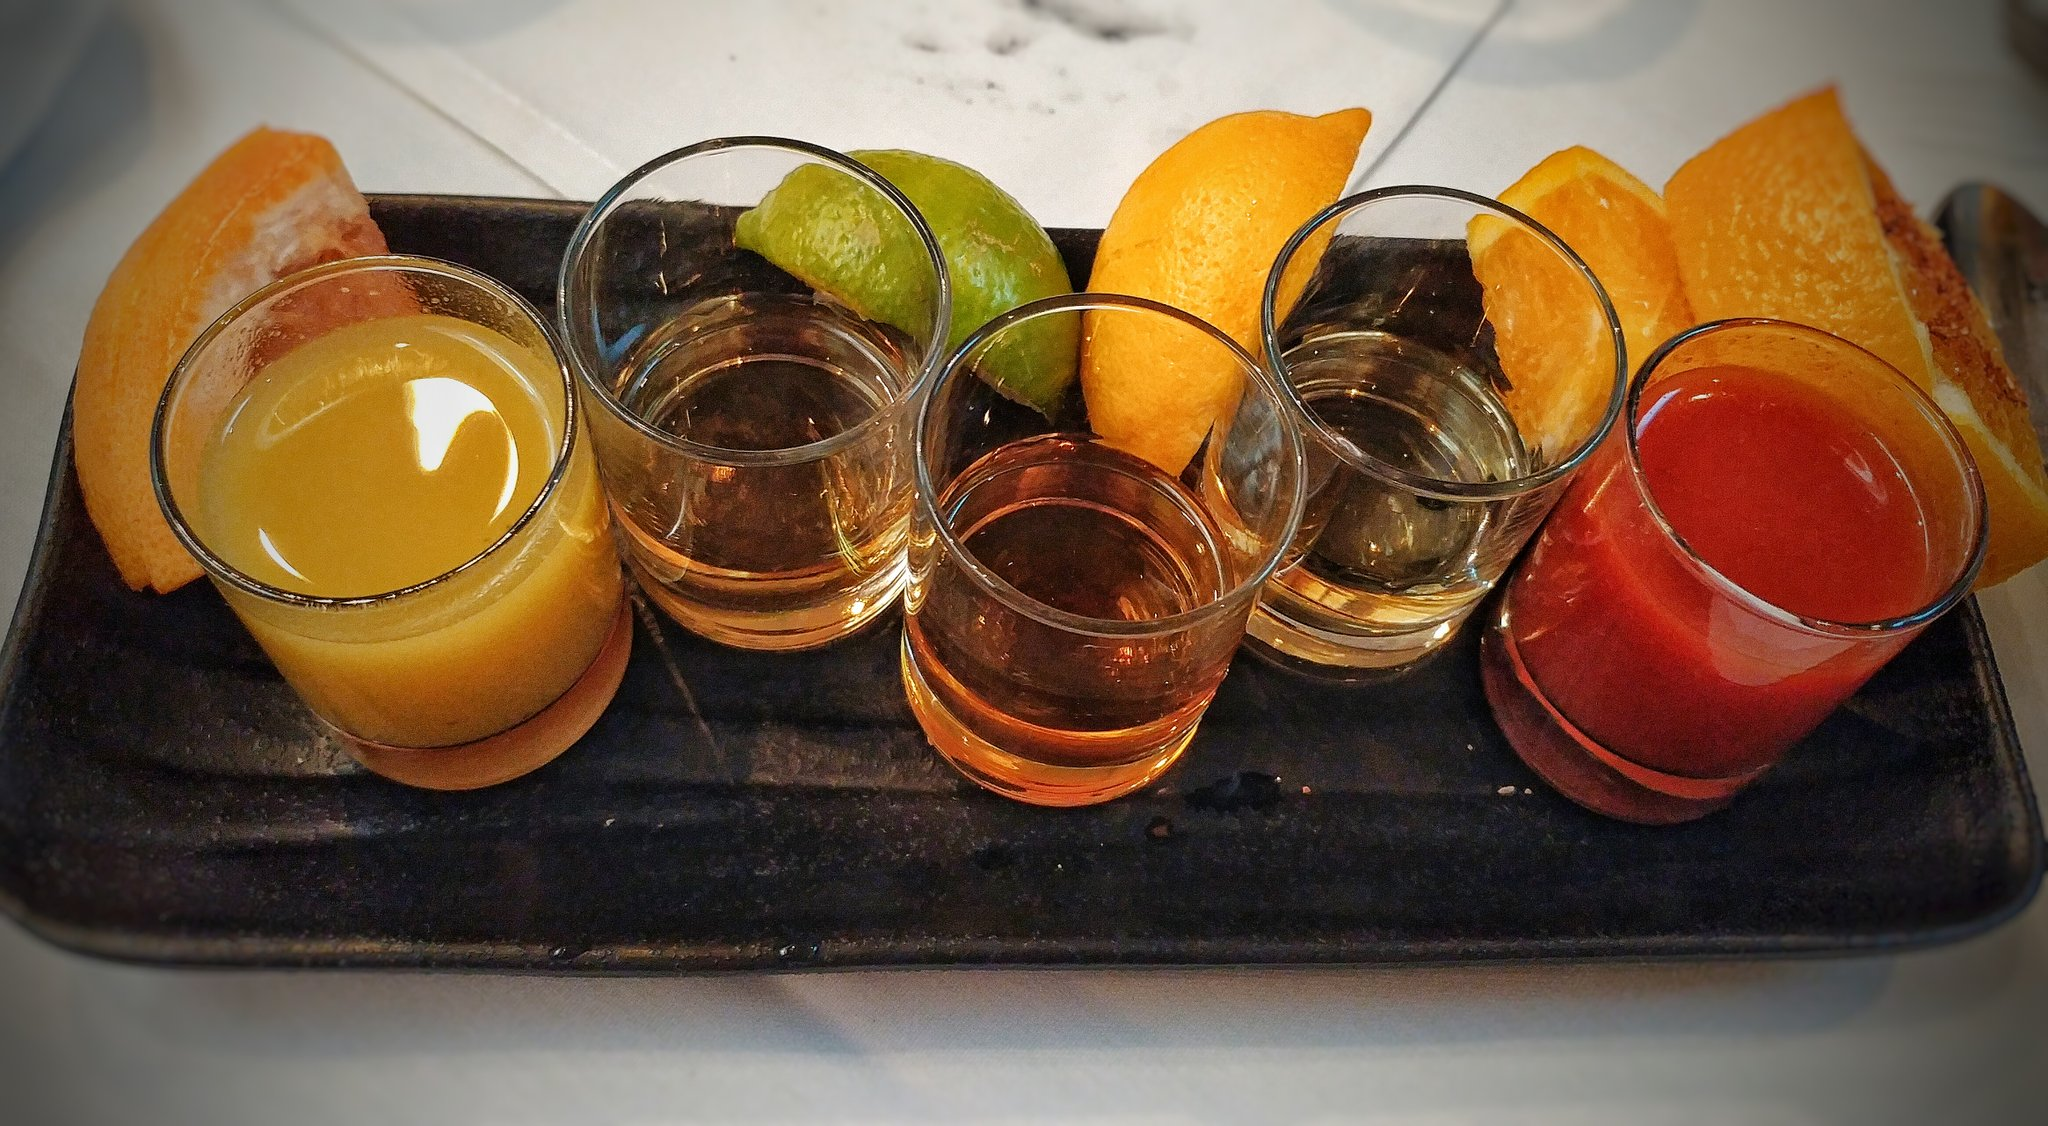 Tequila añejo flight is everything. #typeacon https://t.co/YGLZxt2x1u